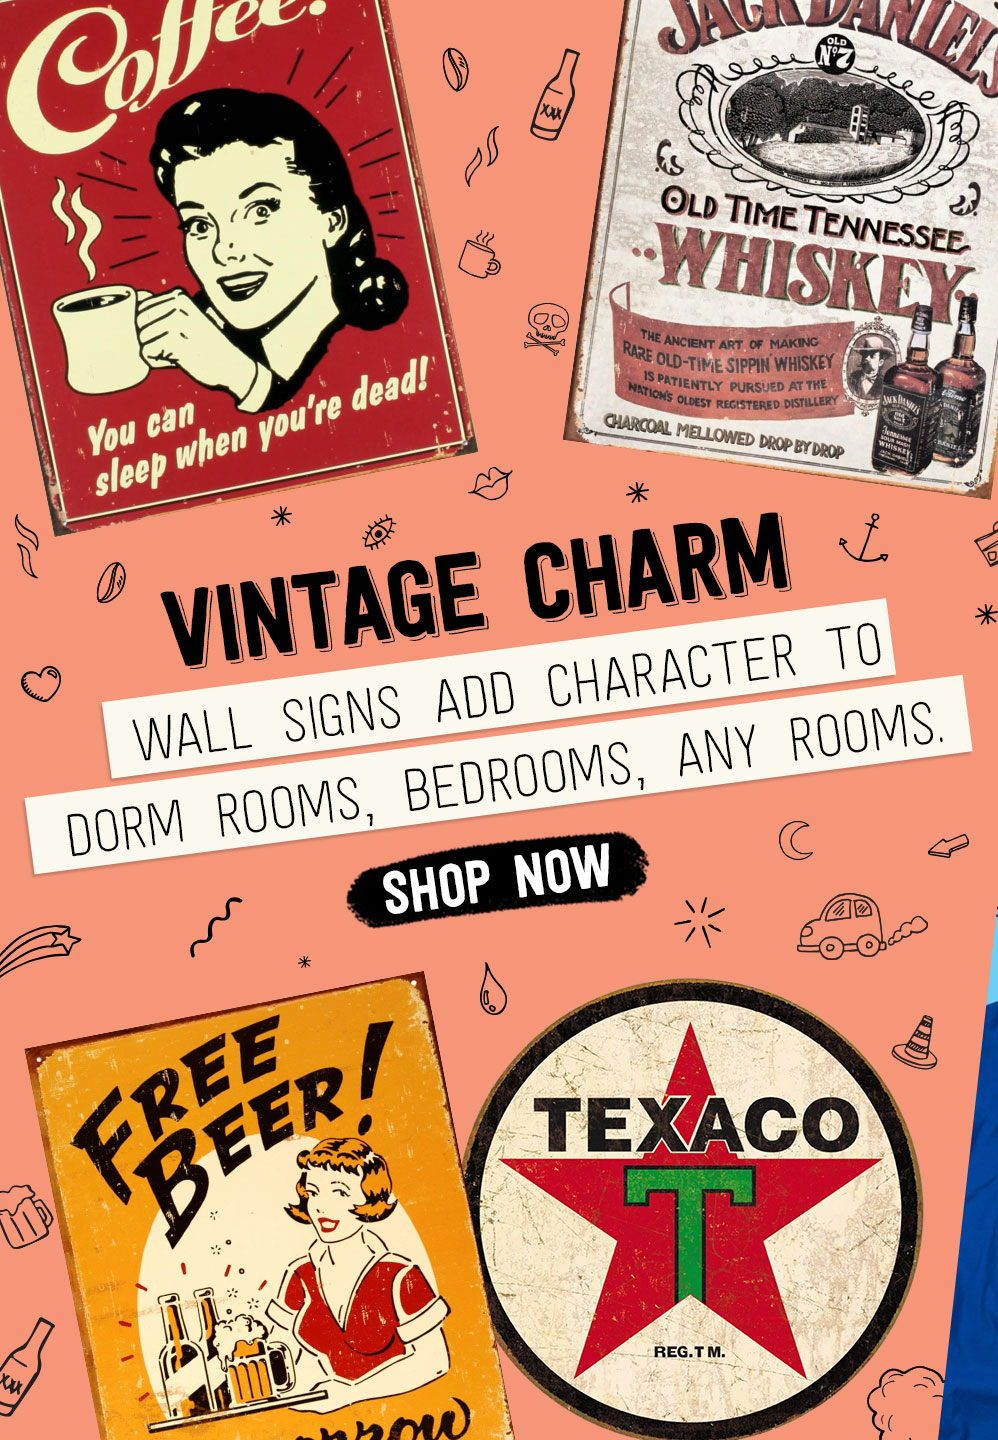 VINTAGE CHARM. Wall signs add character to dorm rooms, bedrooms, any rooms. Shop Now